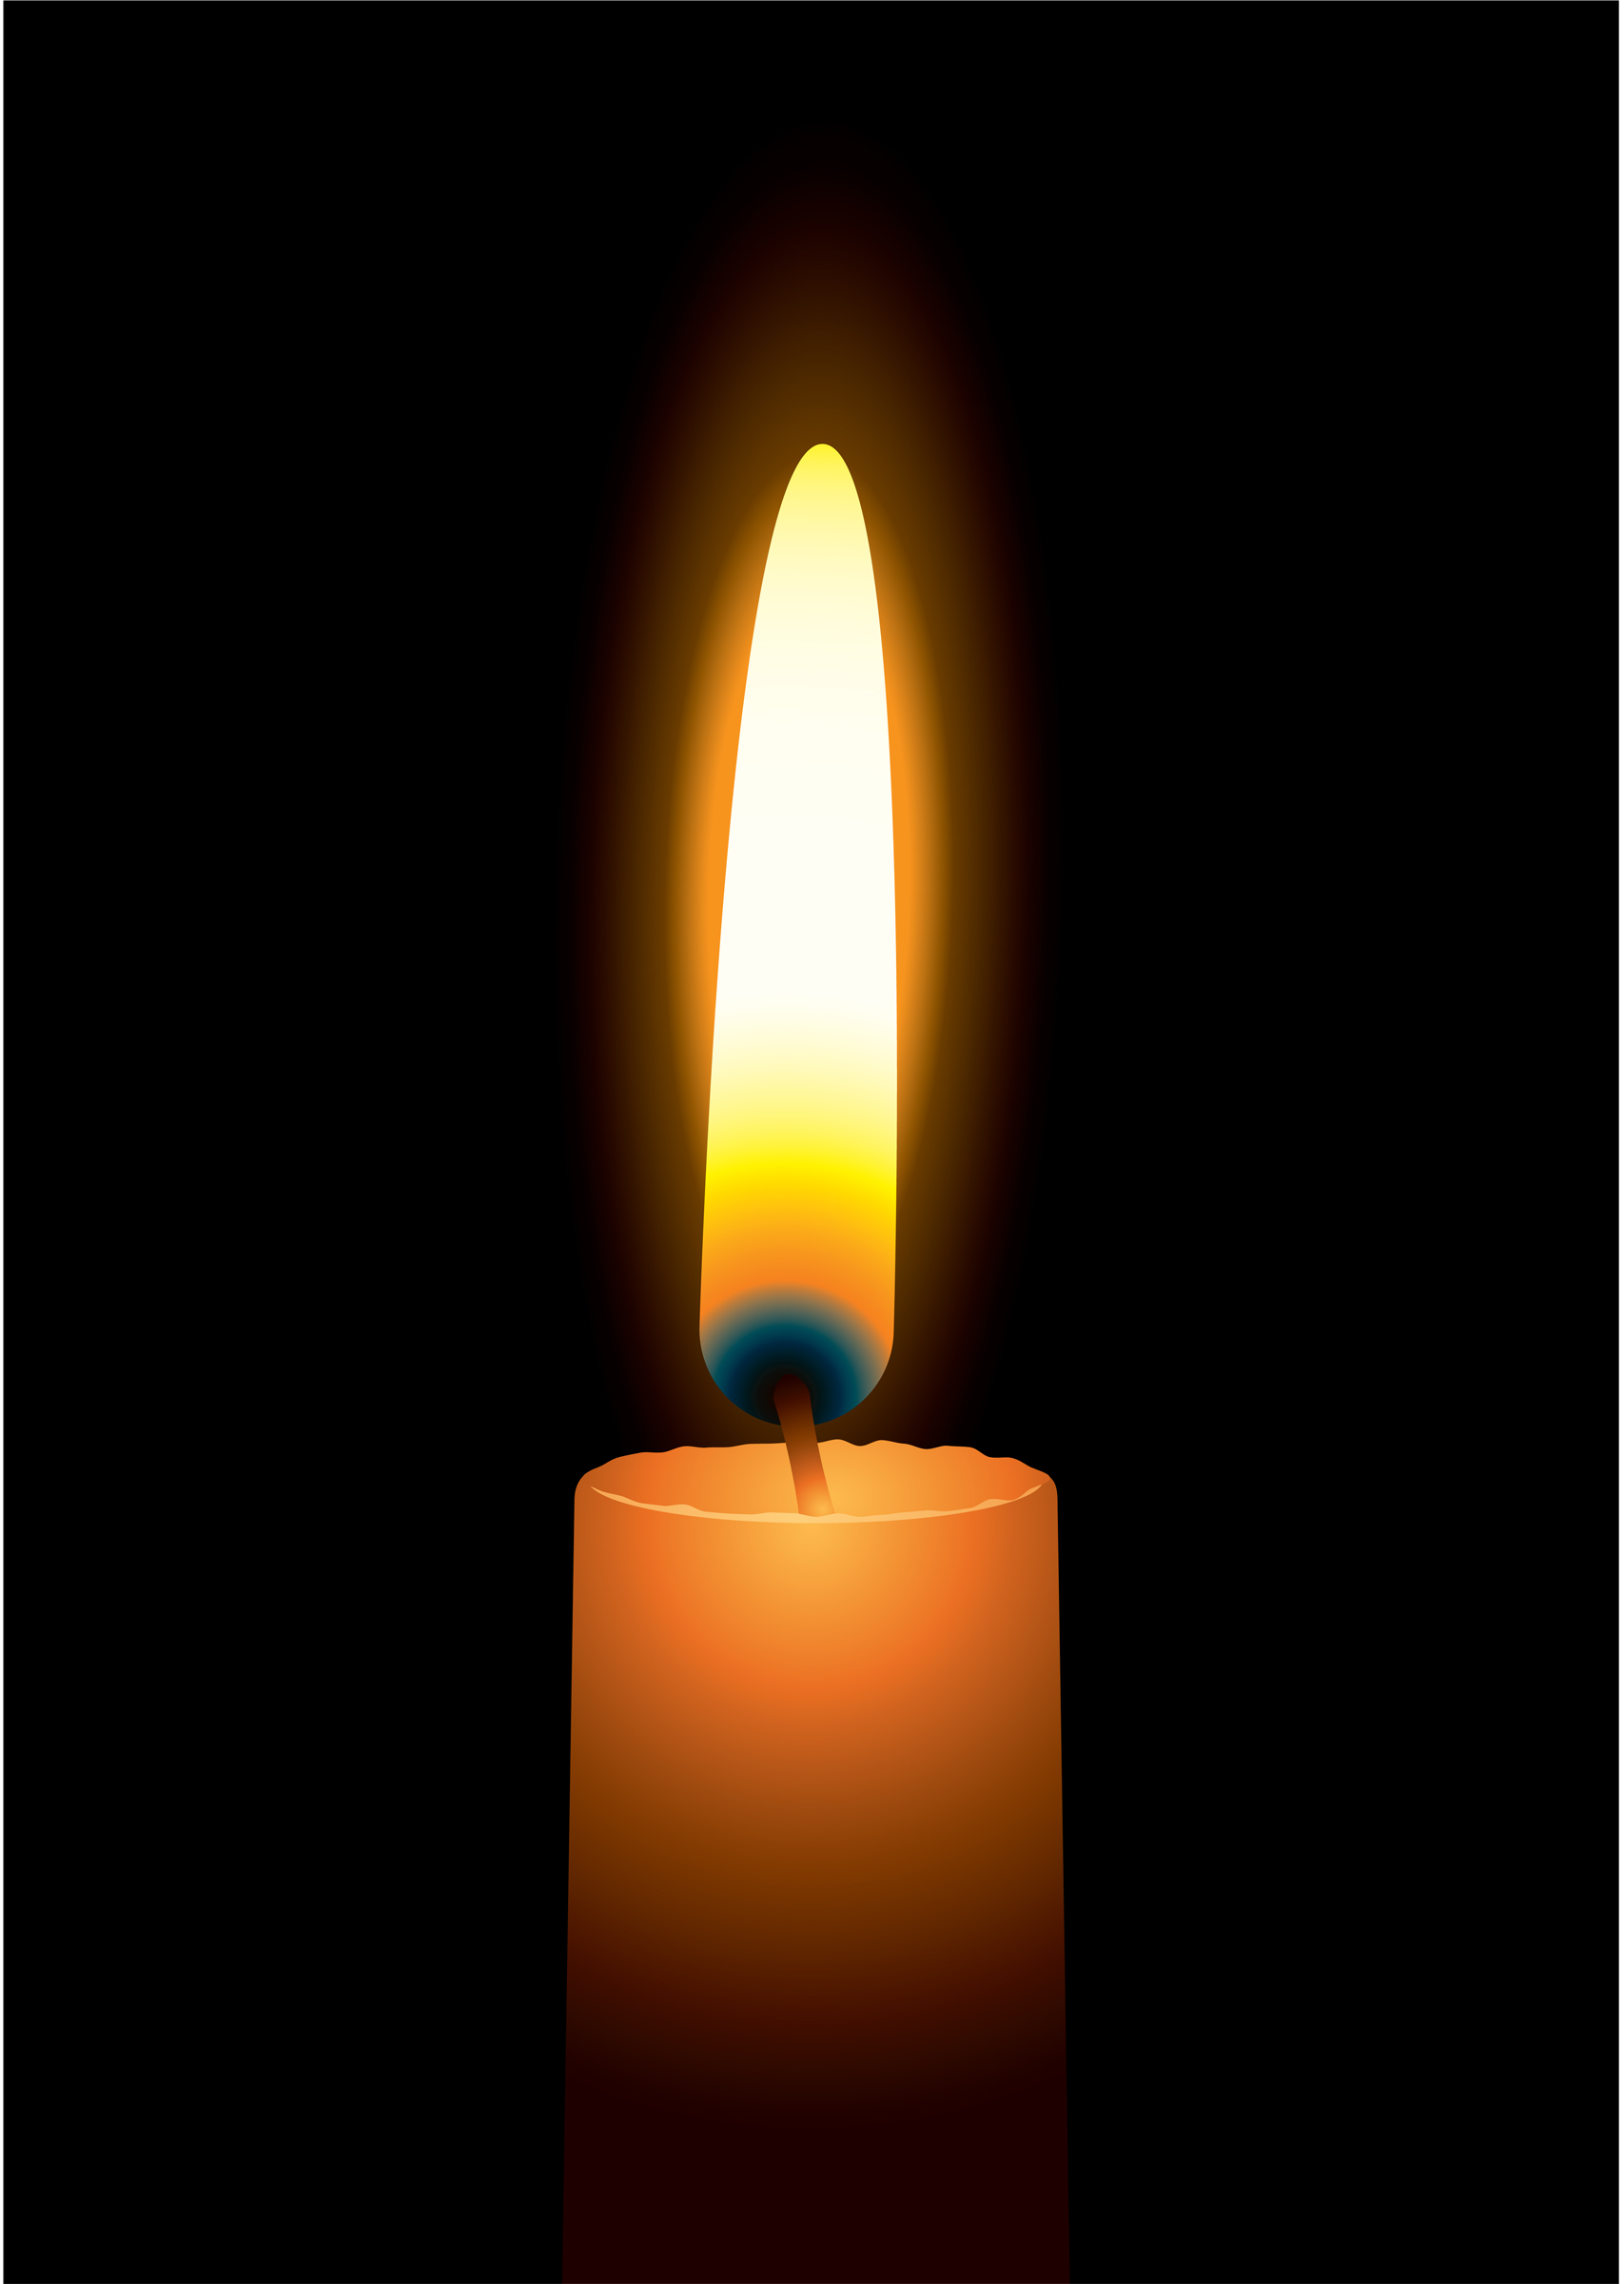 Animated Candle Flame Gif Clipart - Candle PNG - PNG Candles Free